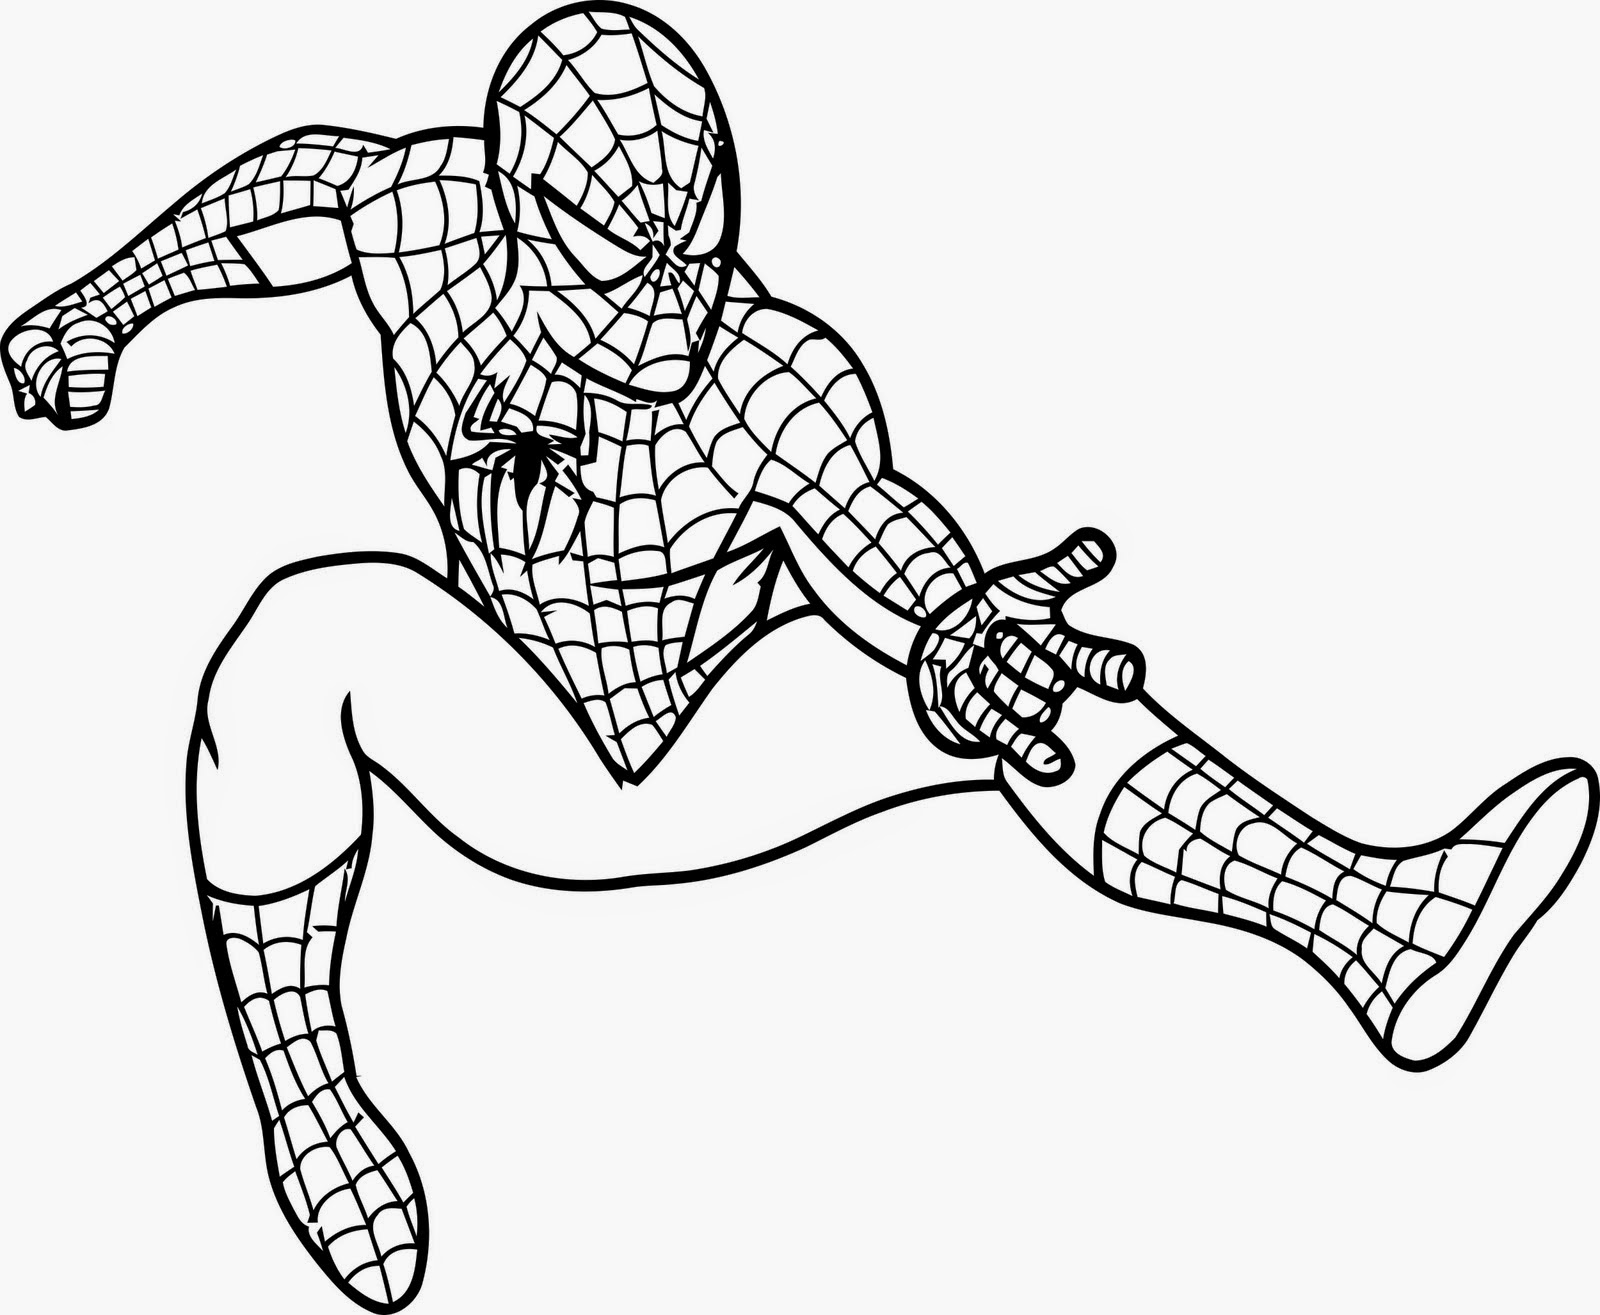 The Holiday Site: Coloring Pages of Spiderman Free and Downloadable